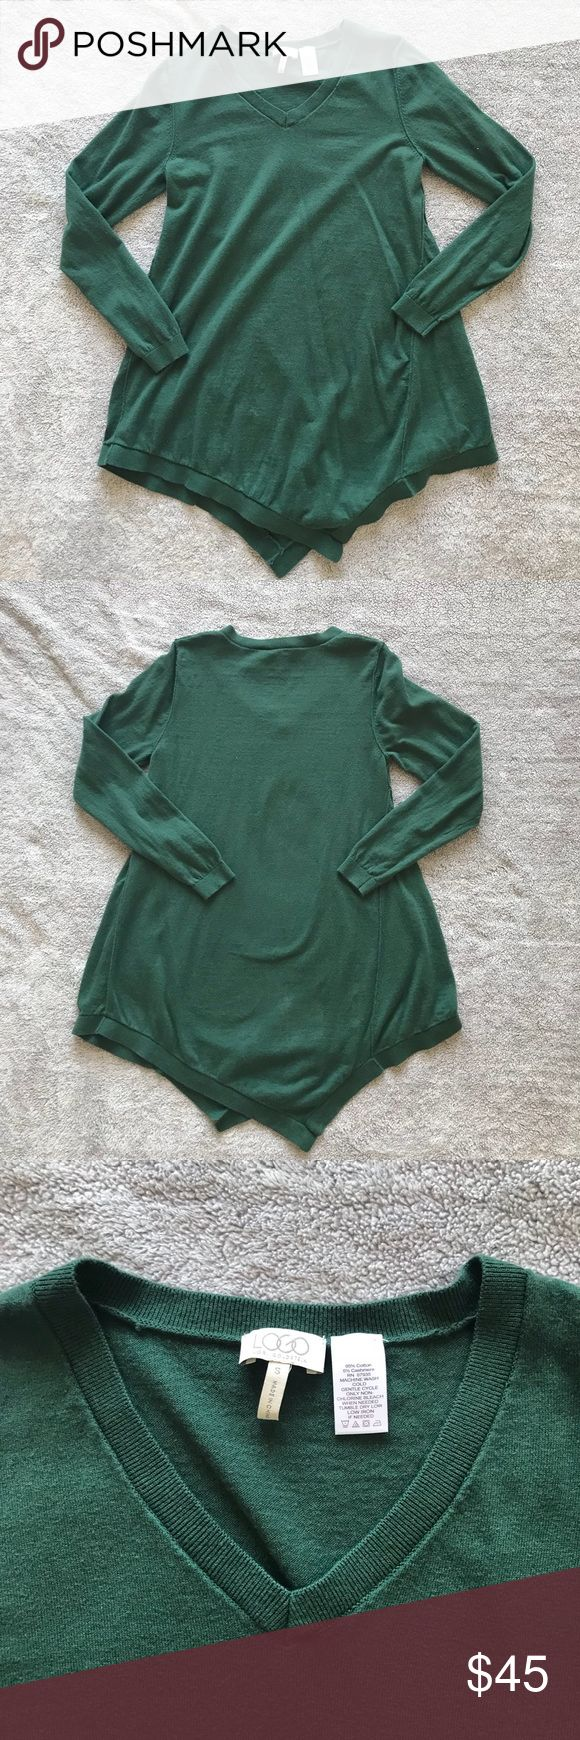 LOGO Cotton Cashmere Asymmetrical Hem Sweater Sz S 🎀 LOGO By Lori Goldstein Cotton Cashmere Asymmetrical Hem Sweater 🎀 Style number A234534 on qvc.com, beautiful pine green top with cashmere! QVC sizing is different, pictured above but top is best for size 6-8.  🎀 Fabric pictured 🎀 Sz S, Measurements pictured above, in inches, taken laid flat 🎀 EUC, no wear/tear/damage to note 🎀 Smoke free, cat friendly home 🎀 No trades 🎀 Buy with confidence! Item identical to pictures & description…